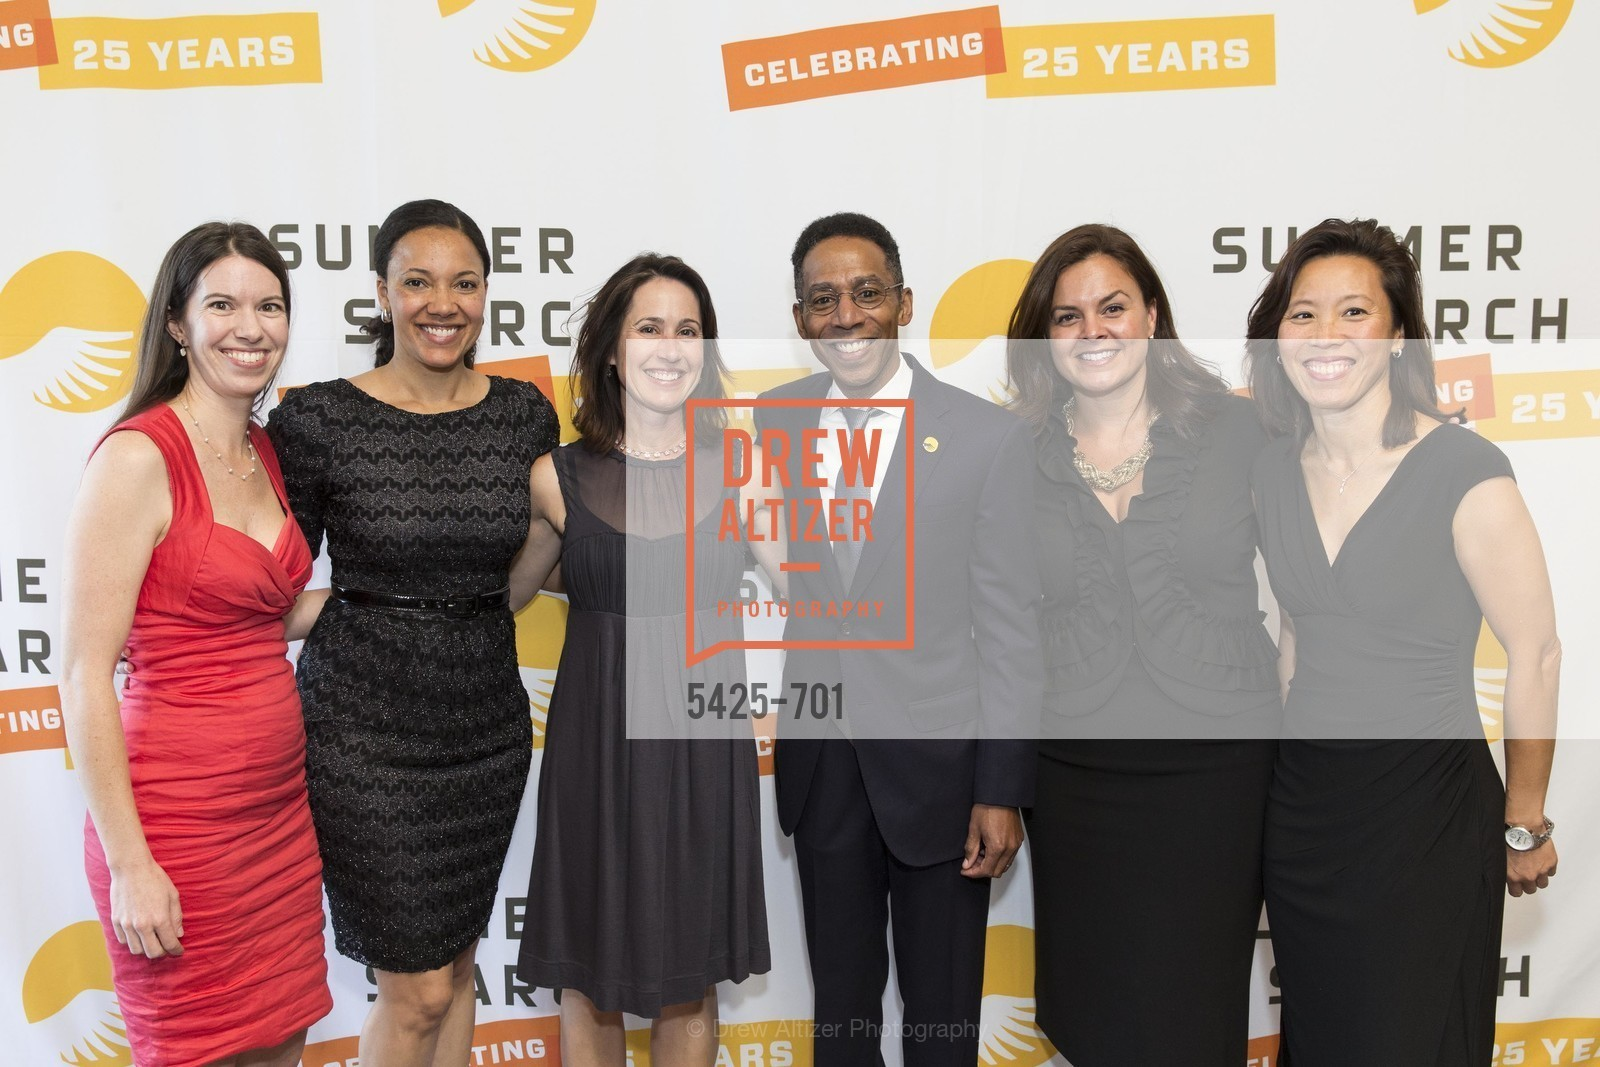 Jessica Vibberts, Amy Saxton, Liz Hurst, Kevin Gay, Guadalupe Nickell, Sandra LaFleur, SUMMER SEARCH San Francisco 25th Anniversary, US, May 7th, 2015,Drew Altizer, Drew Altizer Photography, full-service agency, private events, San Francisco photographer, photographer california